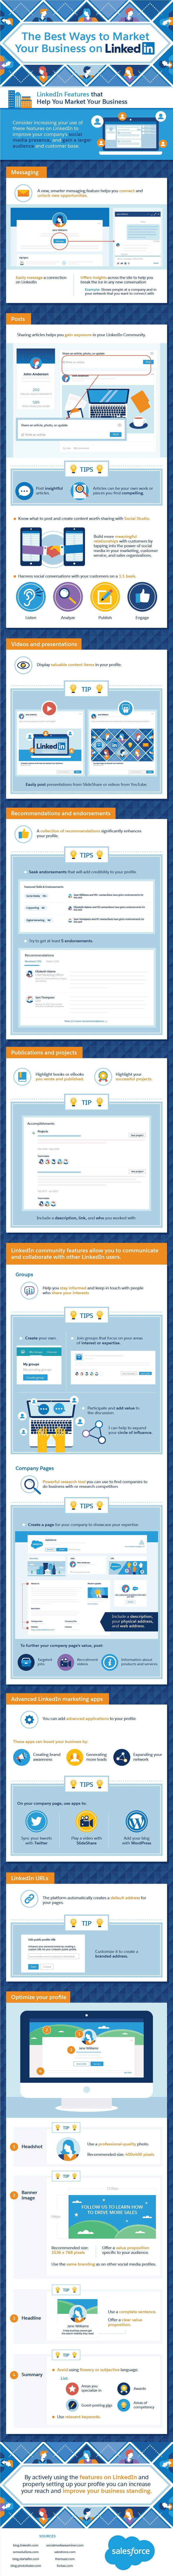 The Best Ways to Market Your Business on LinkedIn - infographic